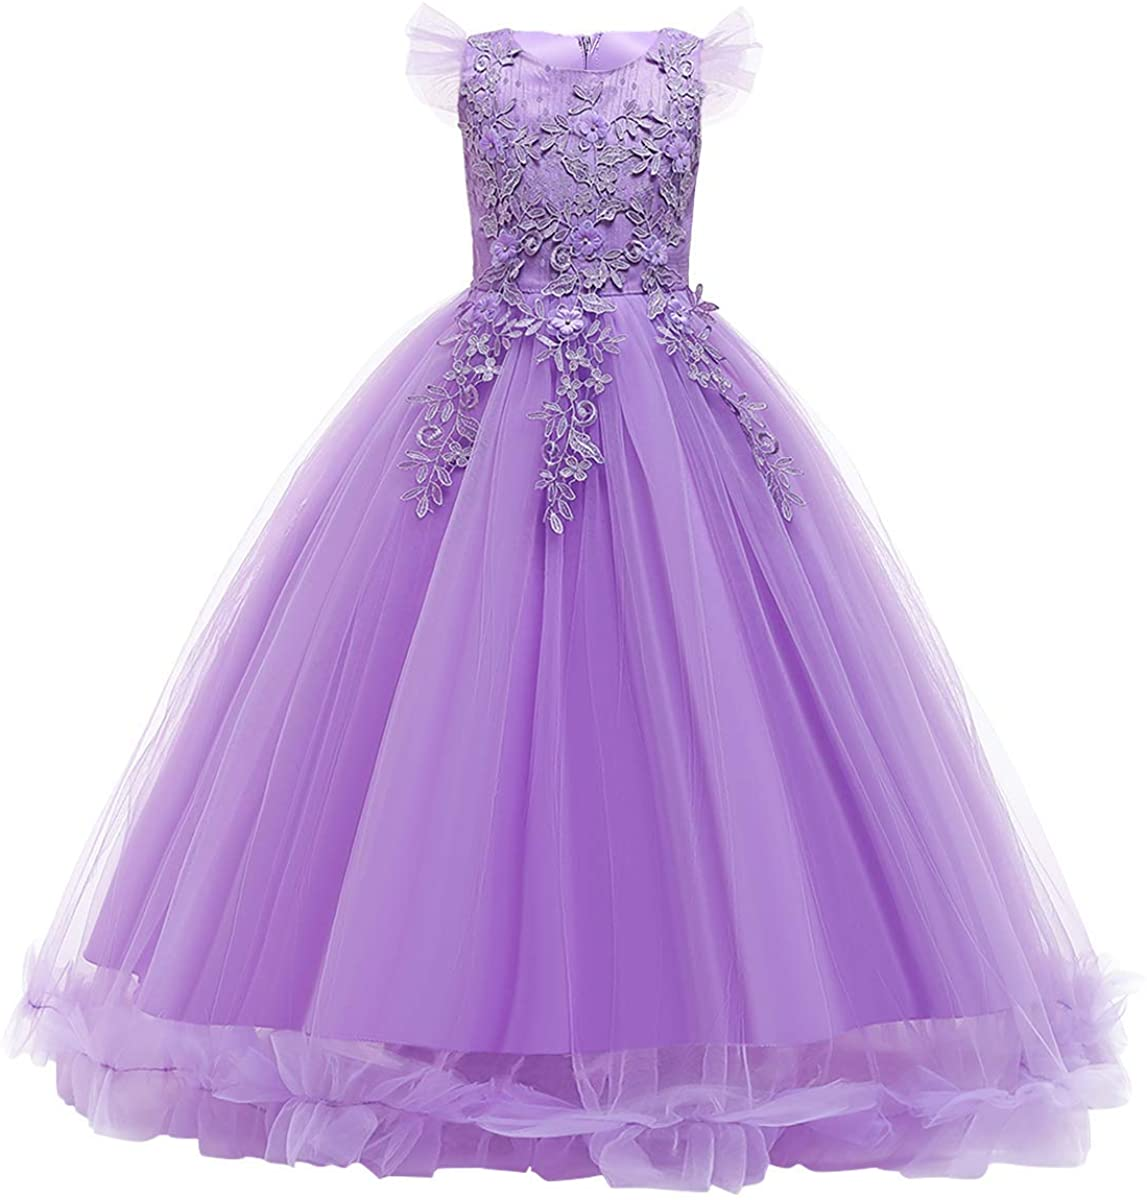 Girls Lace Jacksonville Mall Pageant Party Dress Wedding Gowns Girl Ranking TOP19 Flower Maxi Fl